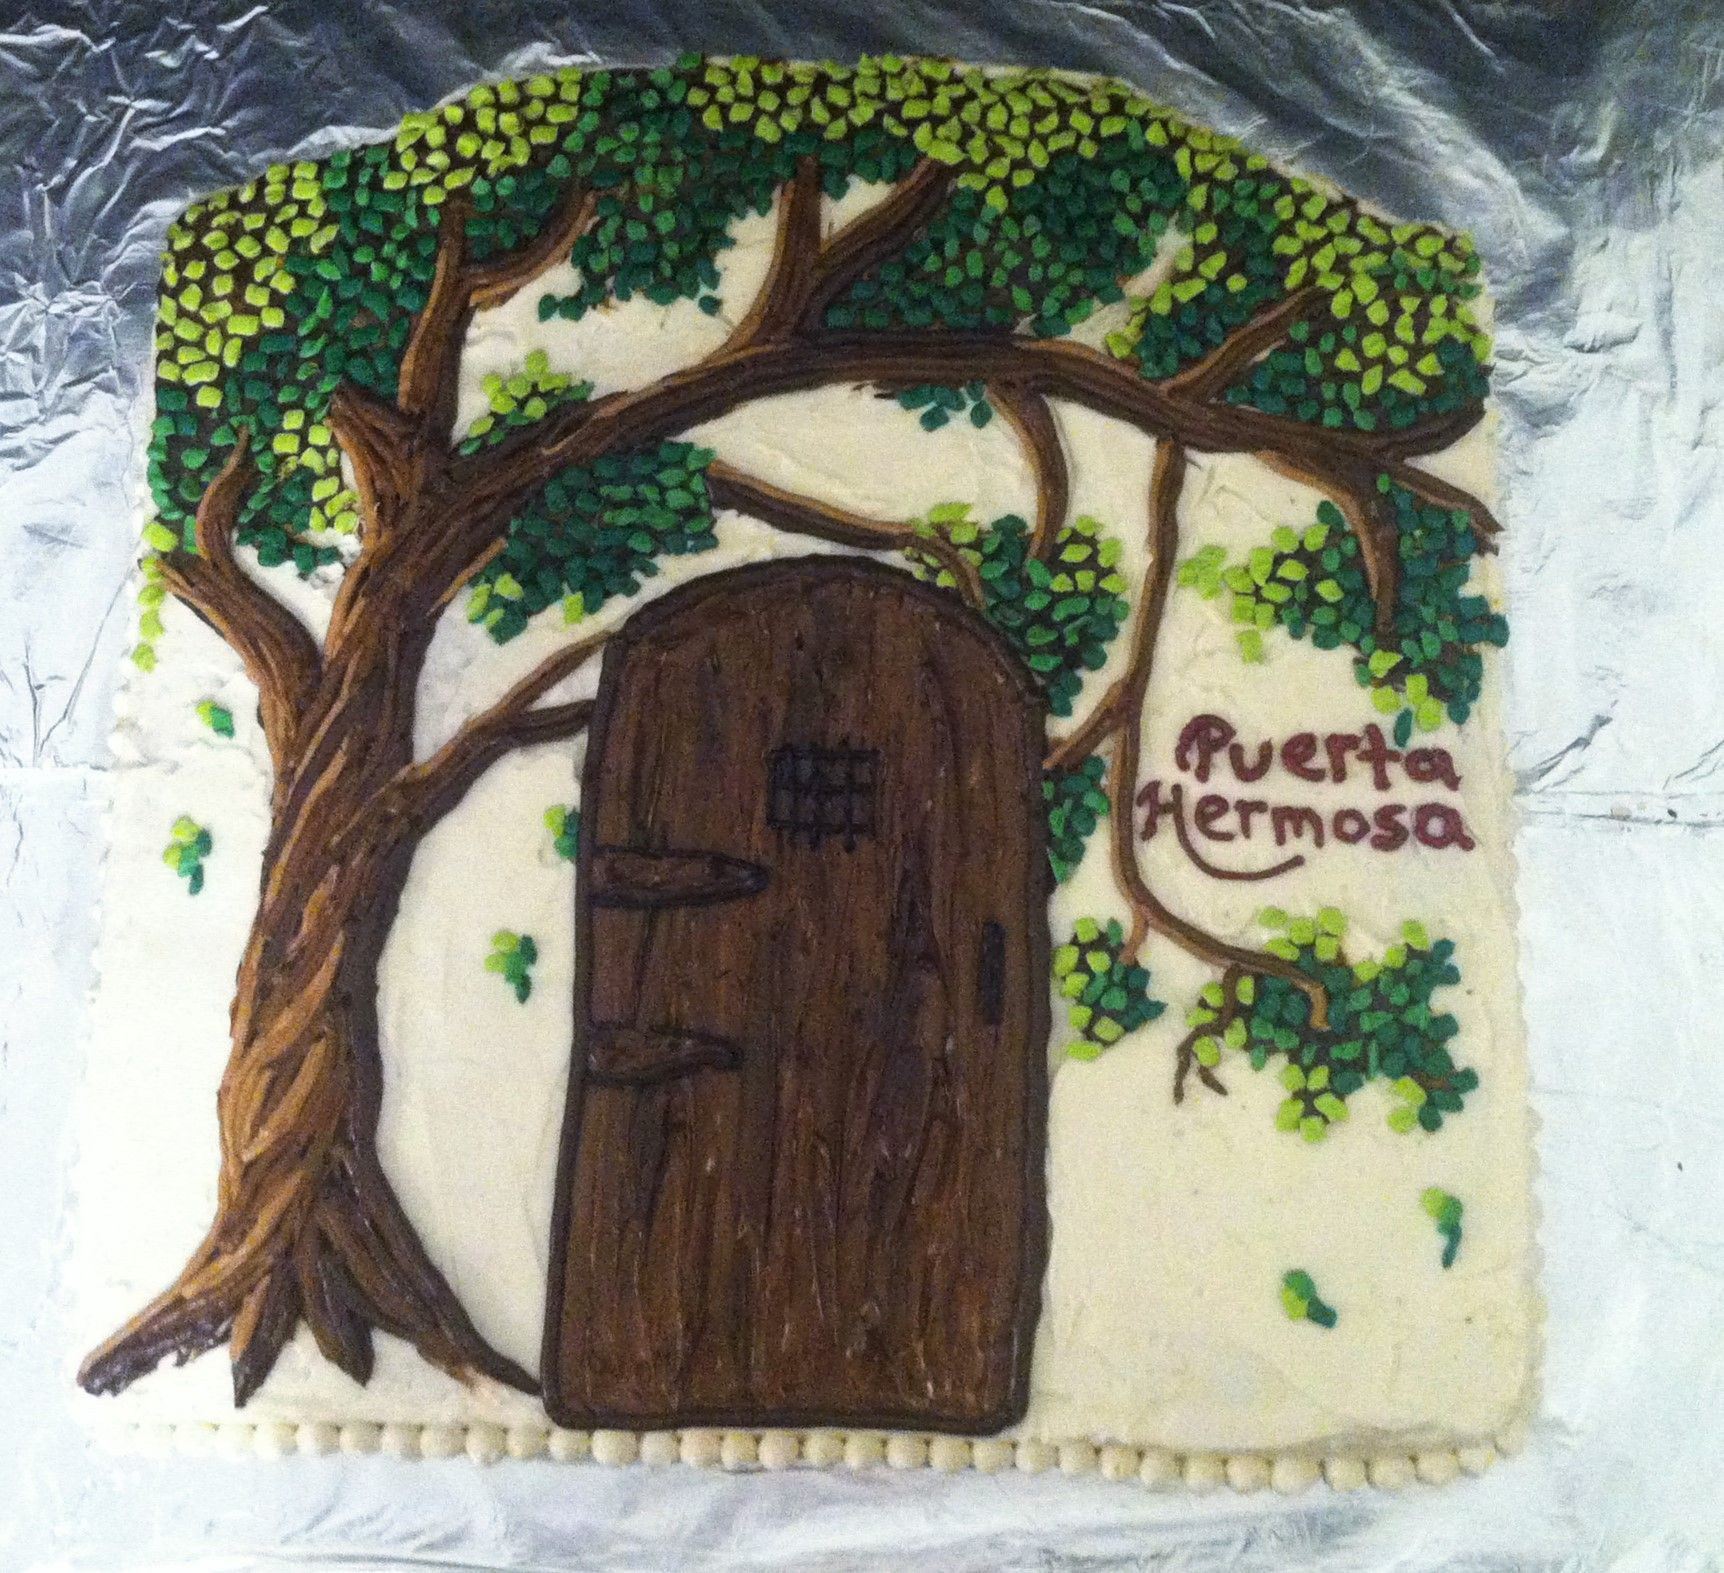 Mosaic looking tree and gate cake